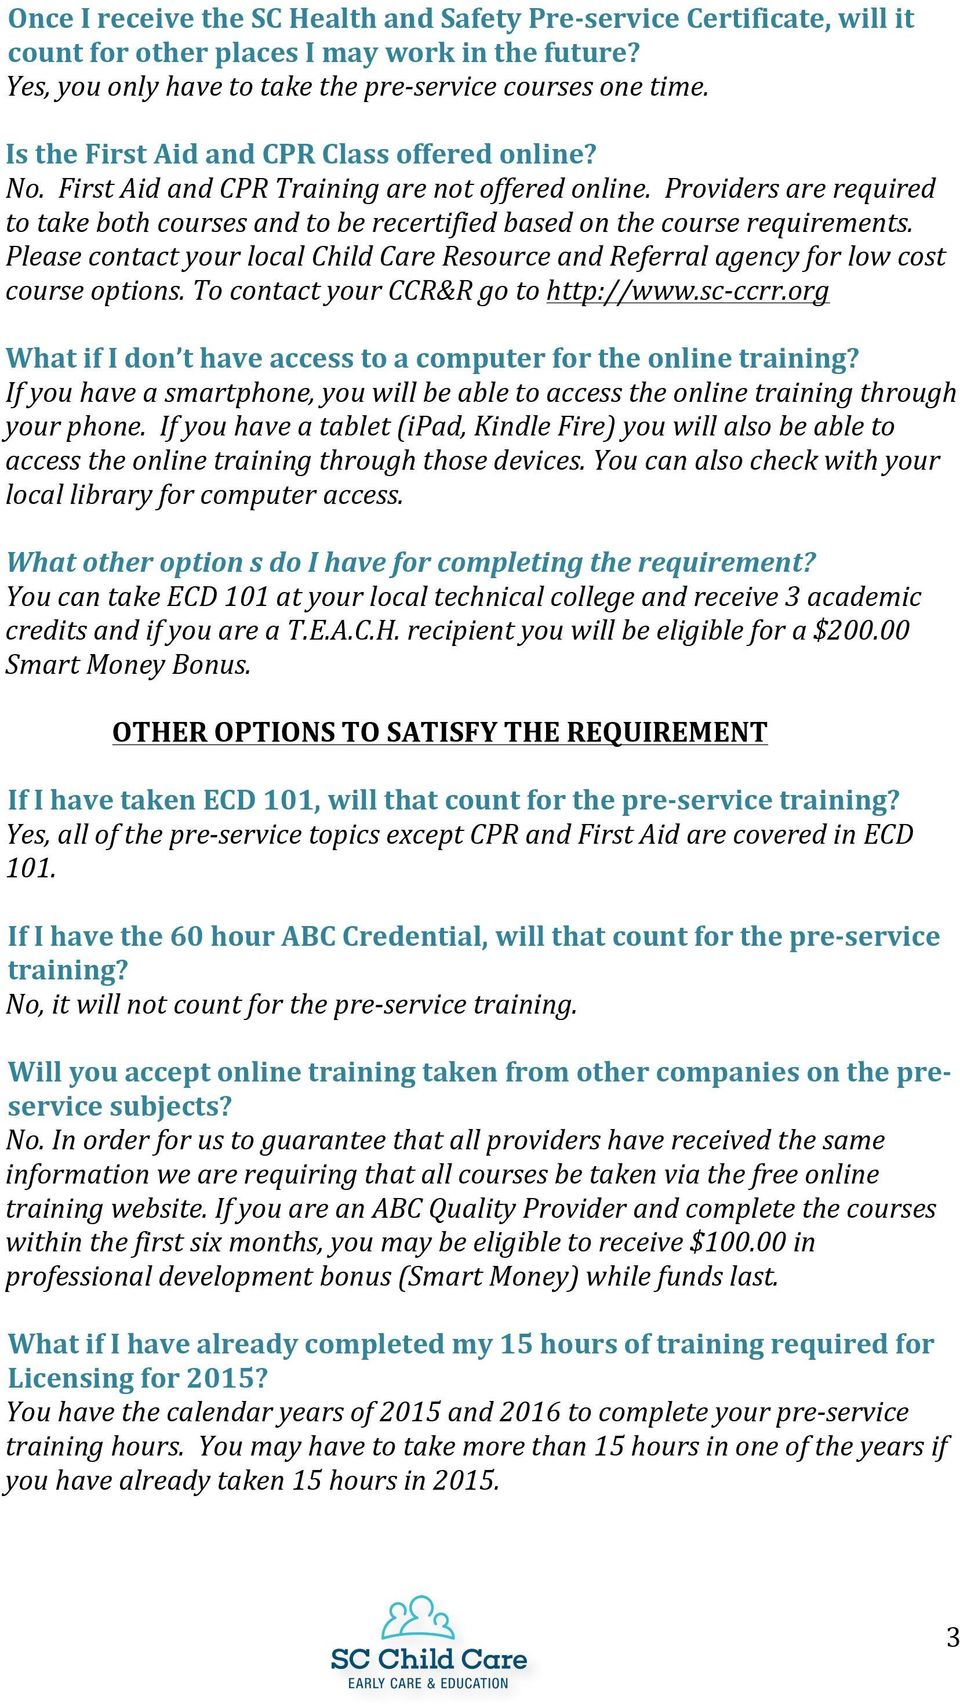 Frequently asked questions pdf providers are required to take both courses and to be recertified based on the course requirements fandeluxe Choice Image